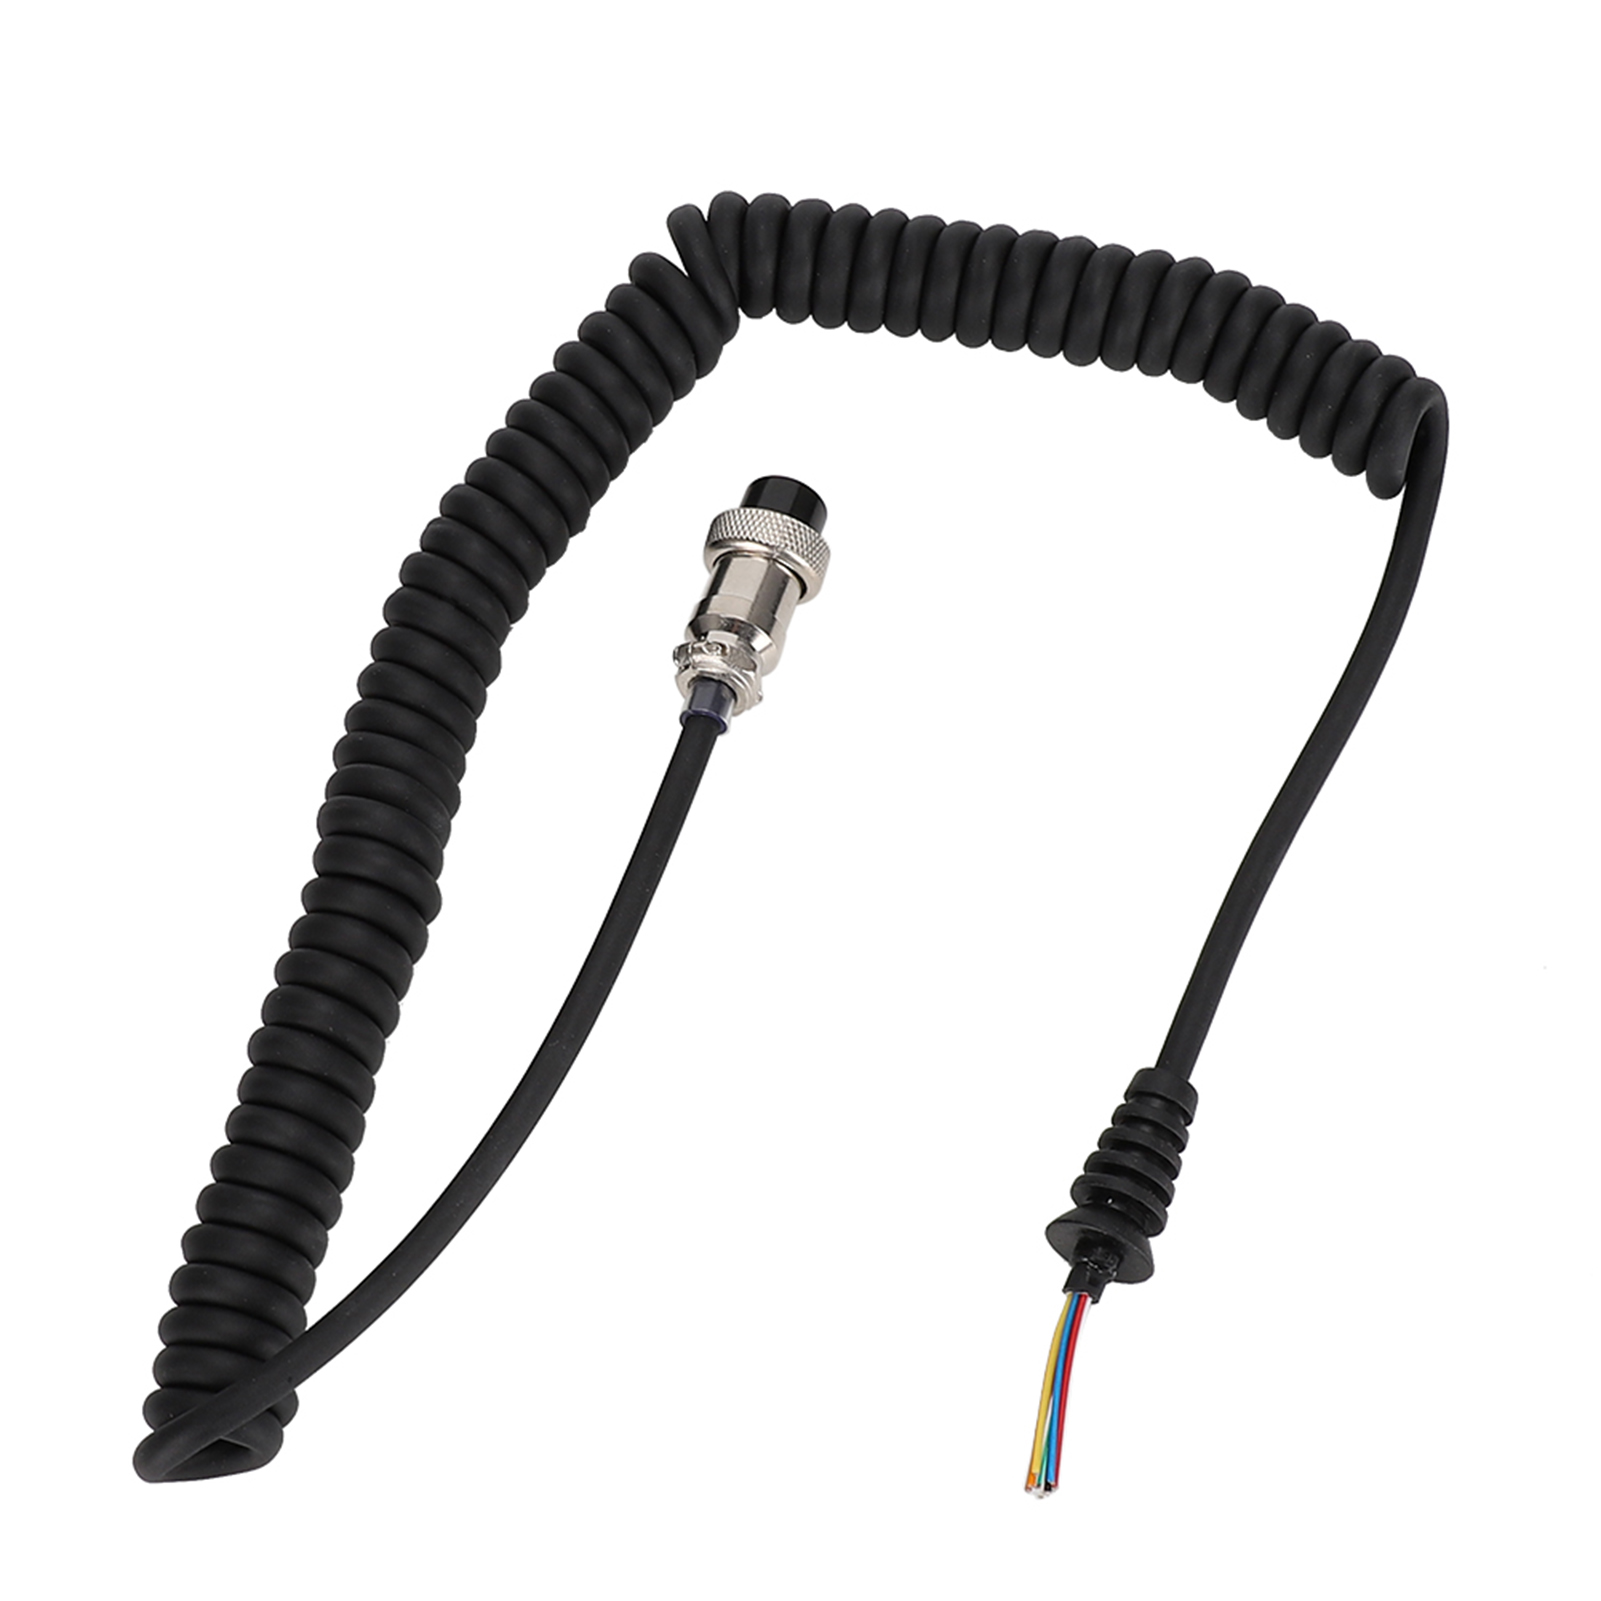 Microphone-Cable-Cord-8Pin-Compatible-w-Kenwood-TM-331A-TM-431A-TM-531A-TM-241A thumbnail 19